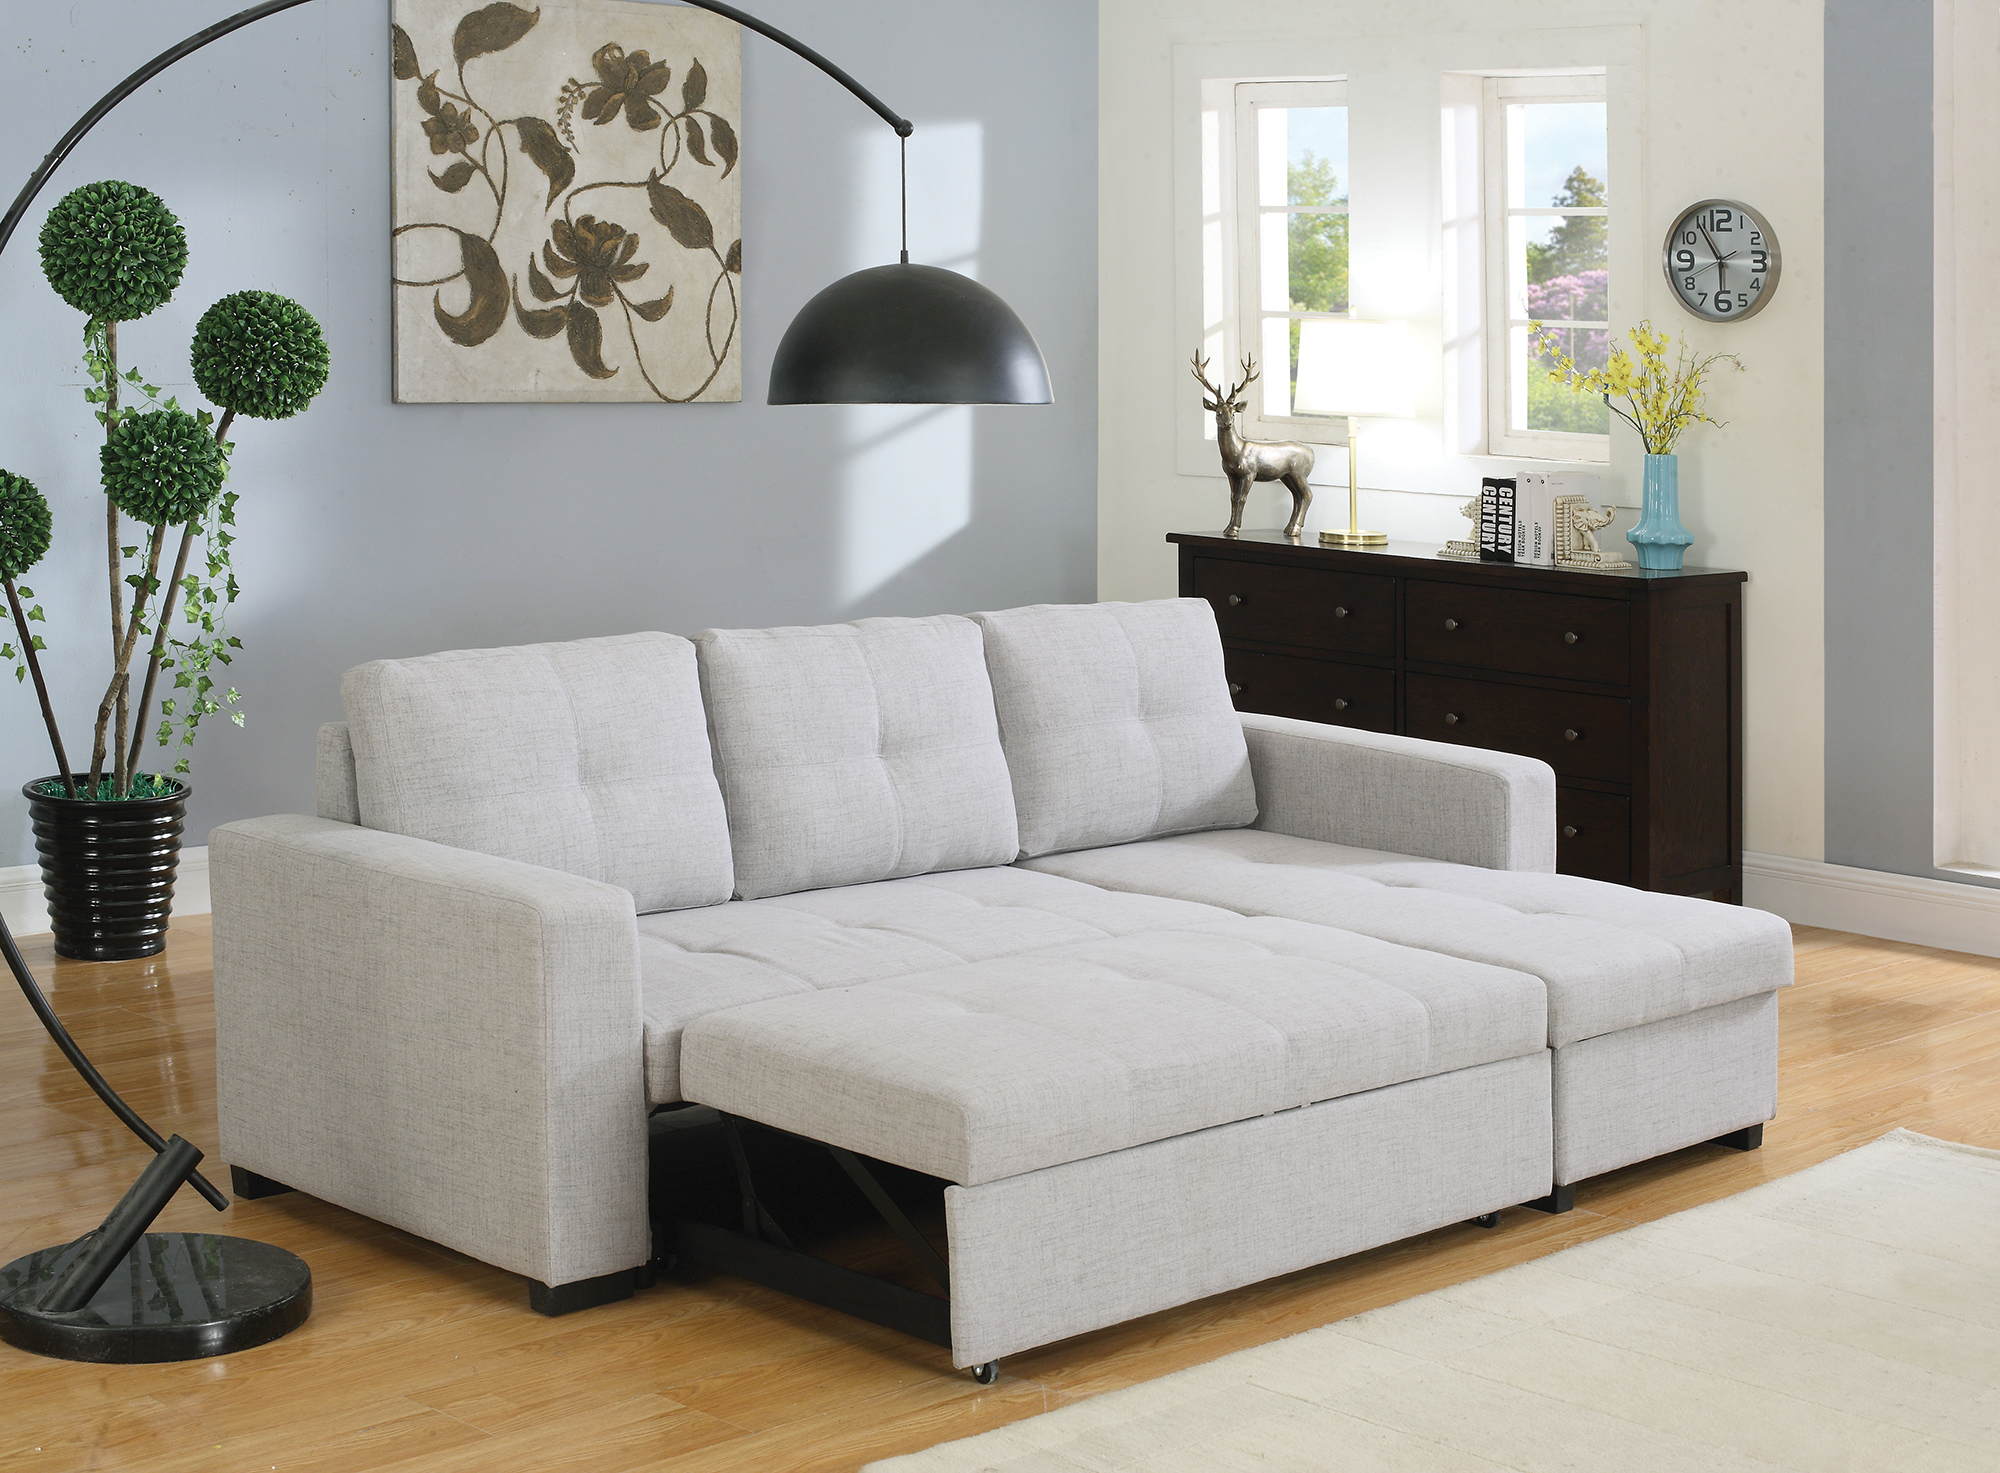 Ebay Sofa Grey Details About Coaster Fabric Sofa With Grey Finish 503926